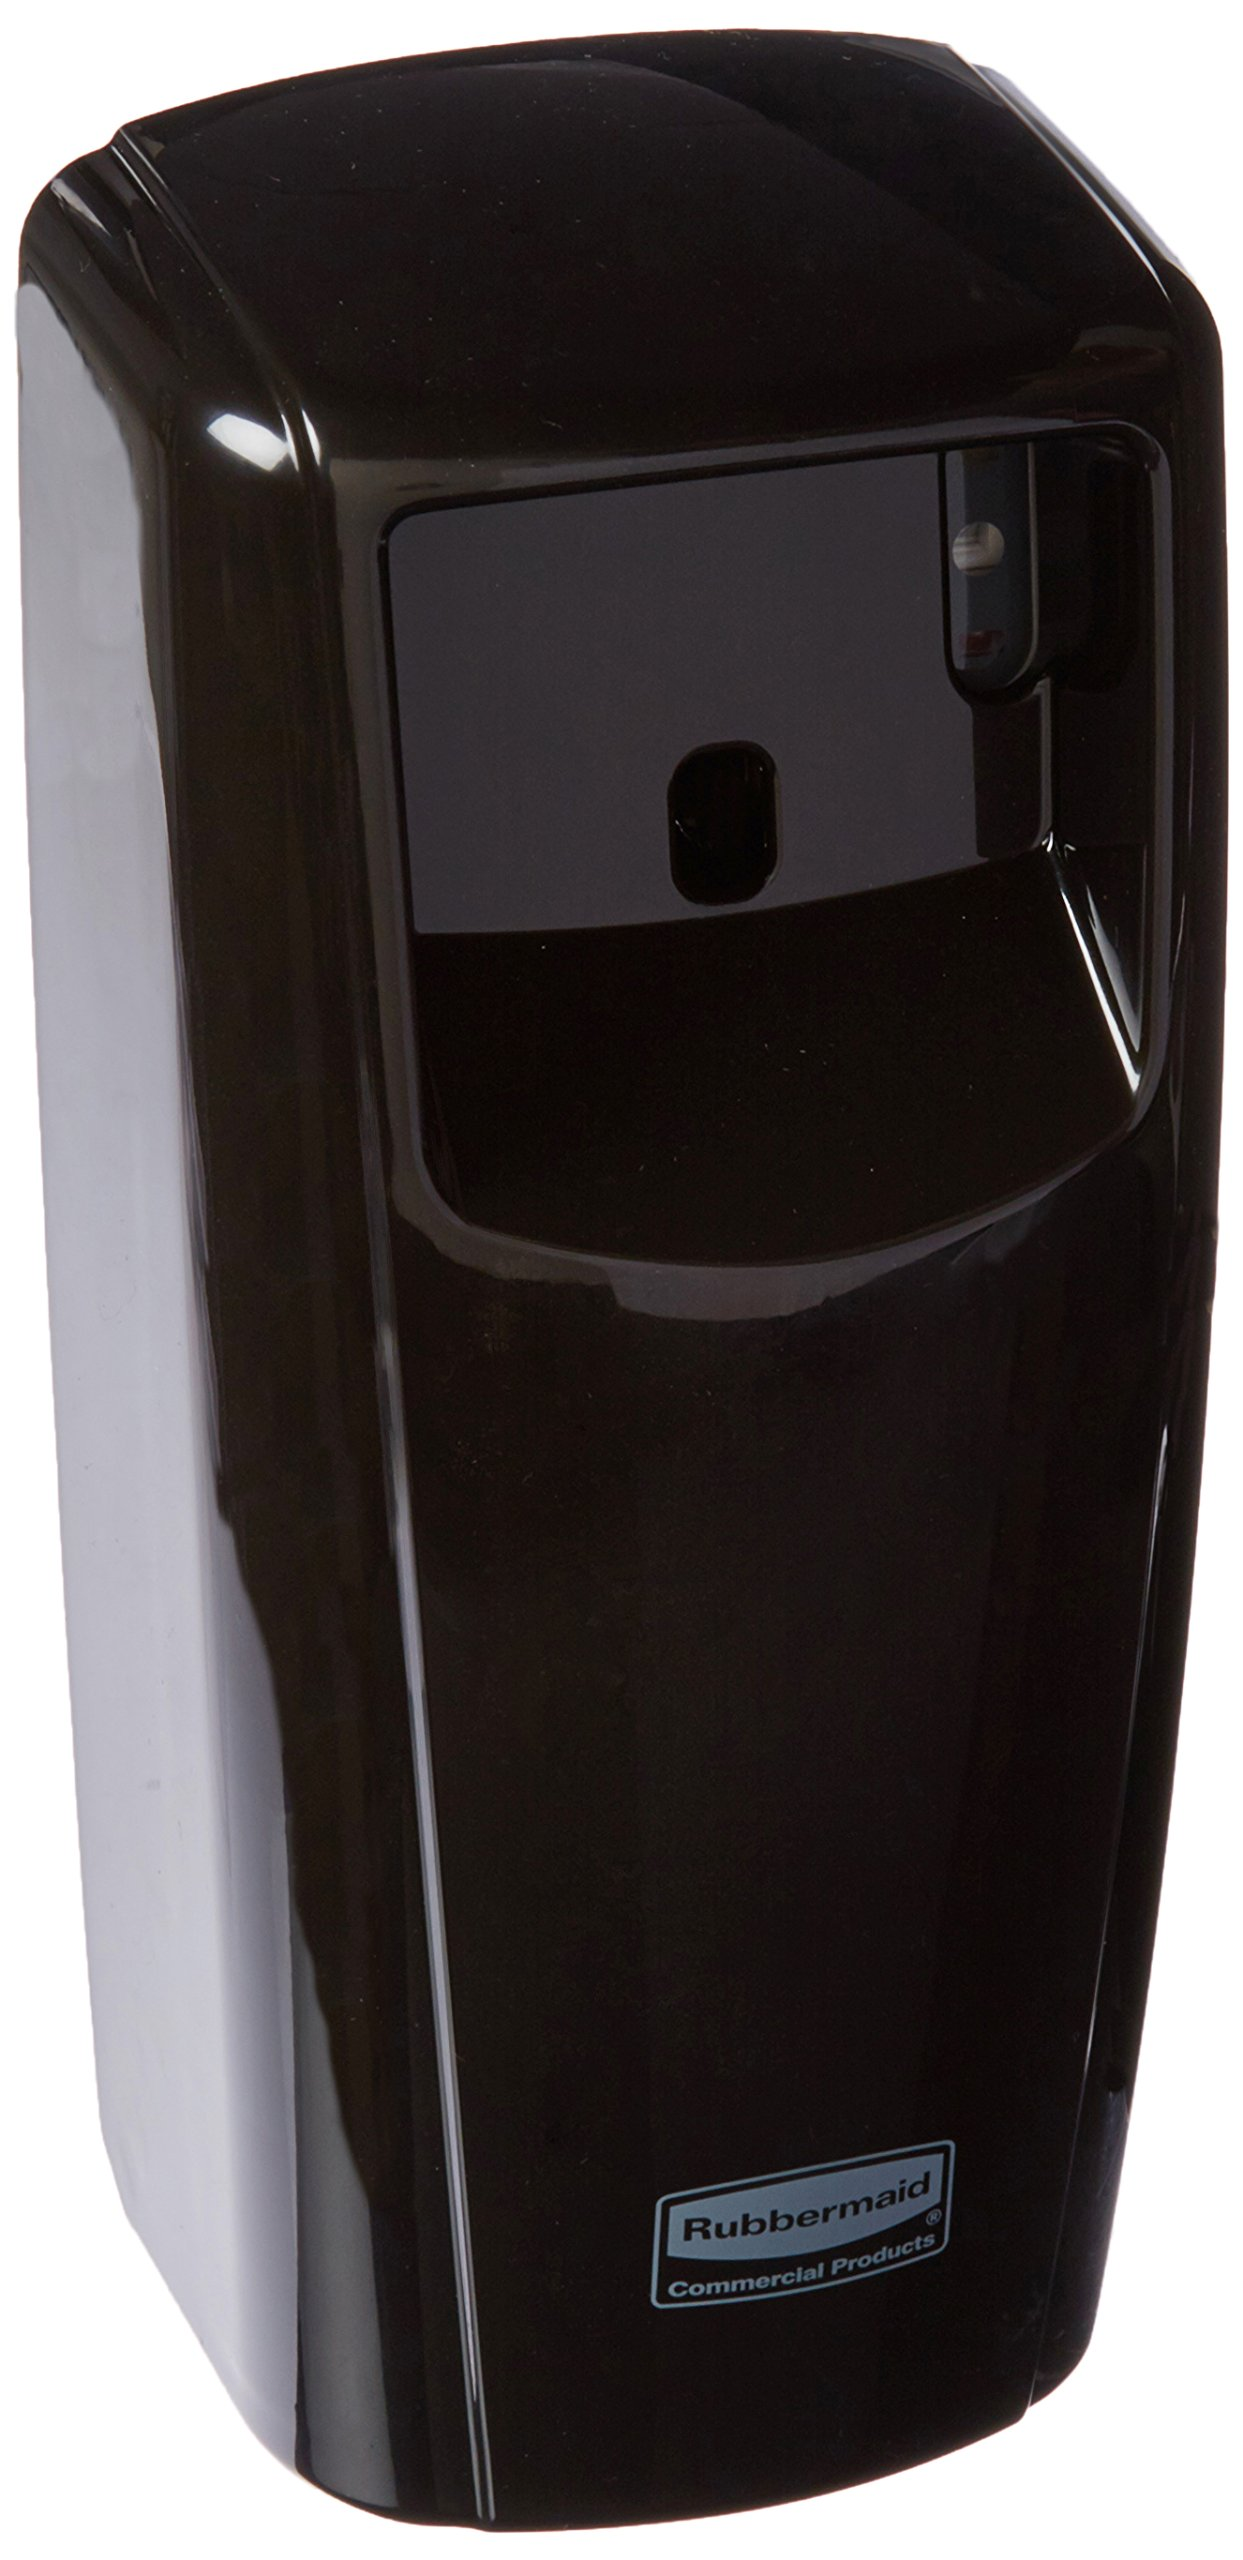 Rubbermaid Commercial Products 1793537 Standard Odor-Control Aerosol Dispenser with LED Display, Black